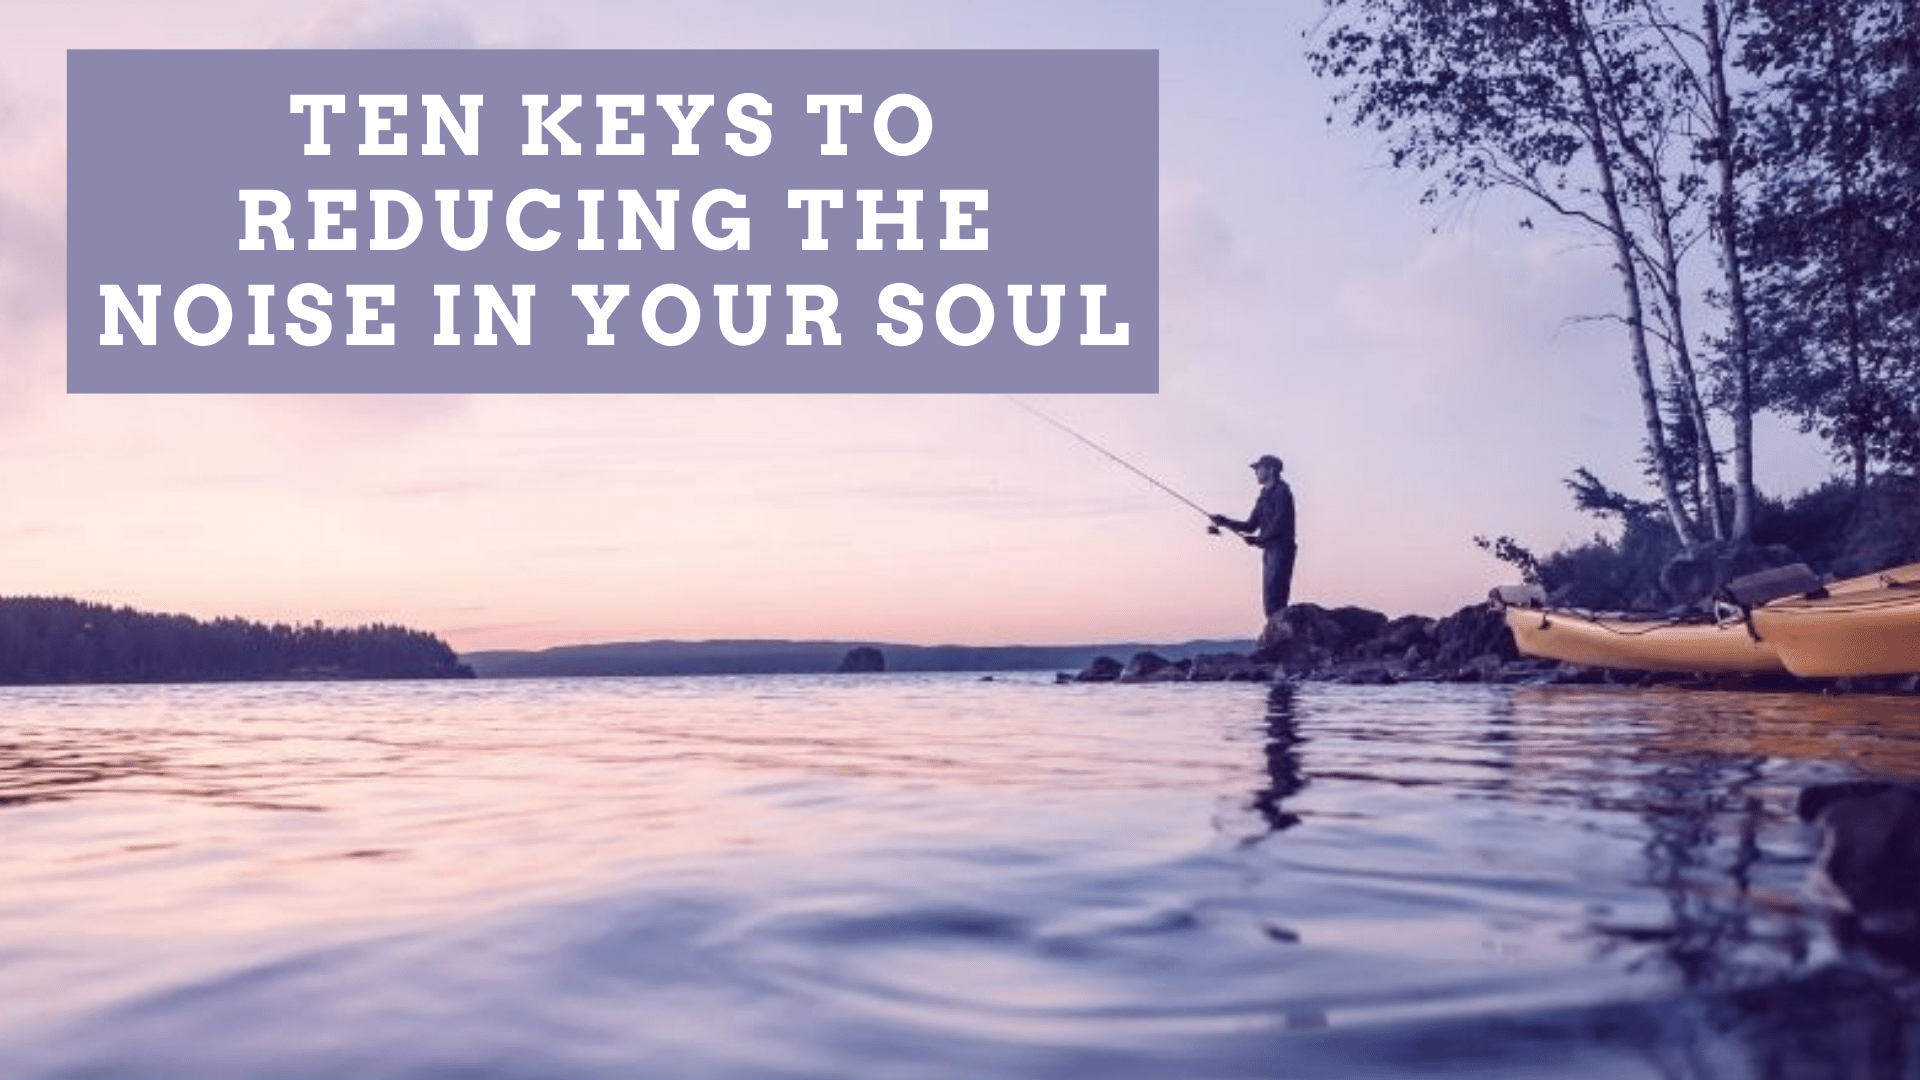 en Keys to Reducing the Noise In Your Soul